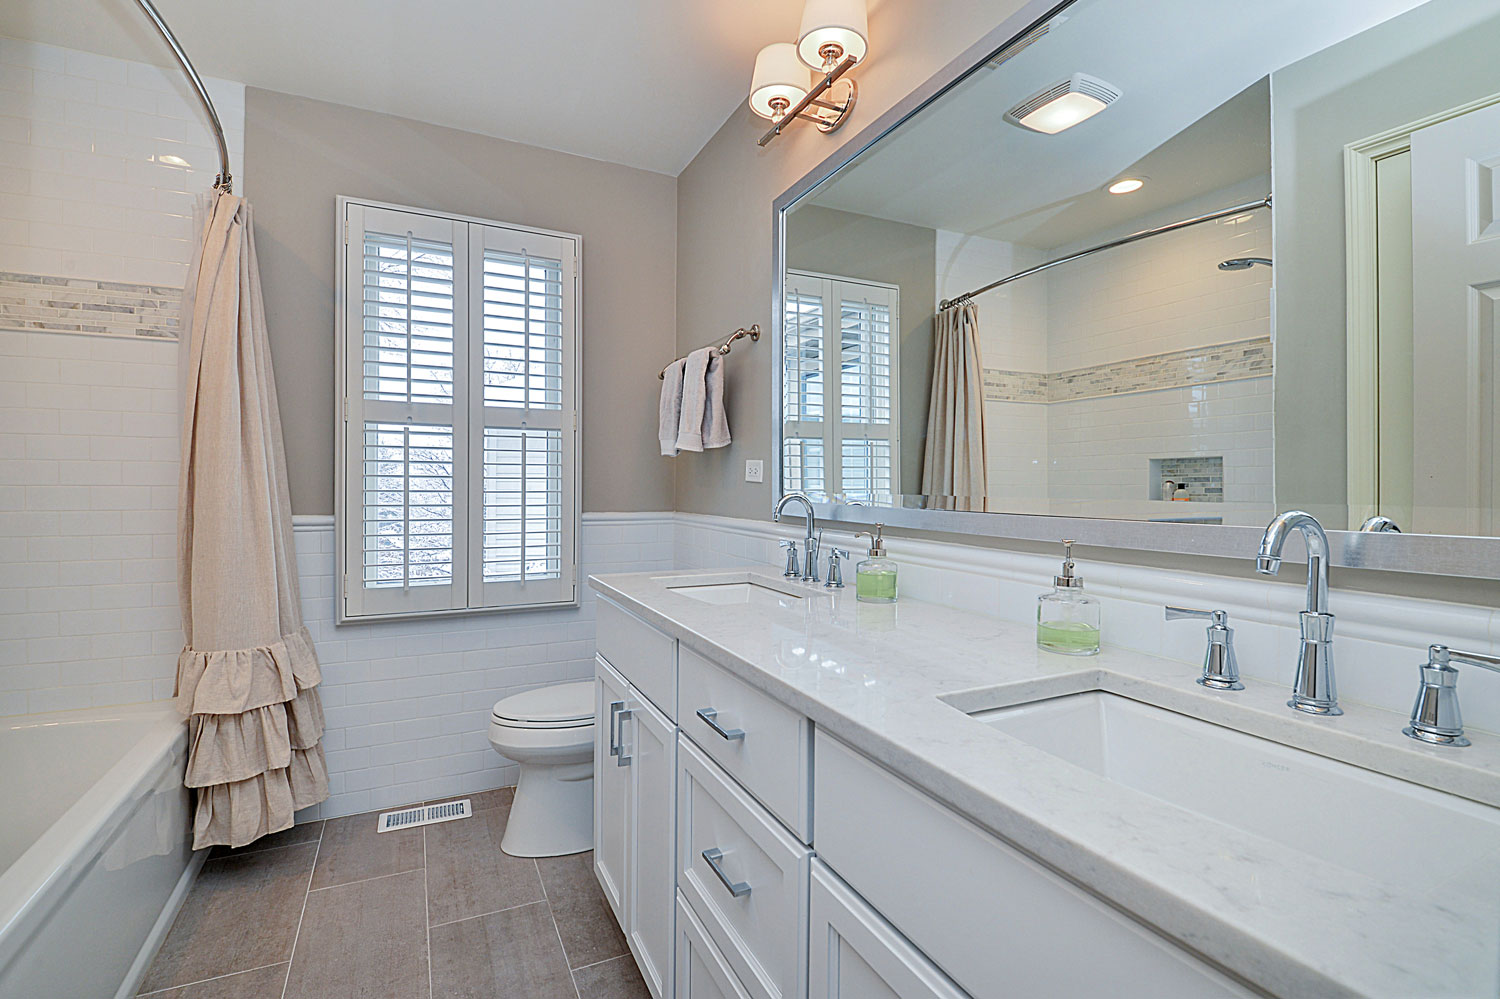 Carl susan 39 s hall bathroom remodel pictures home for Remodeling your bathroom ideas